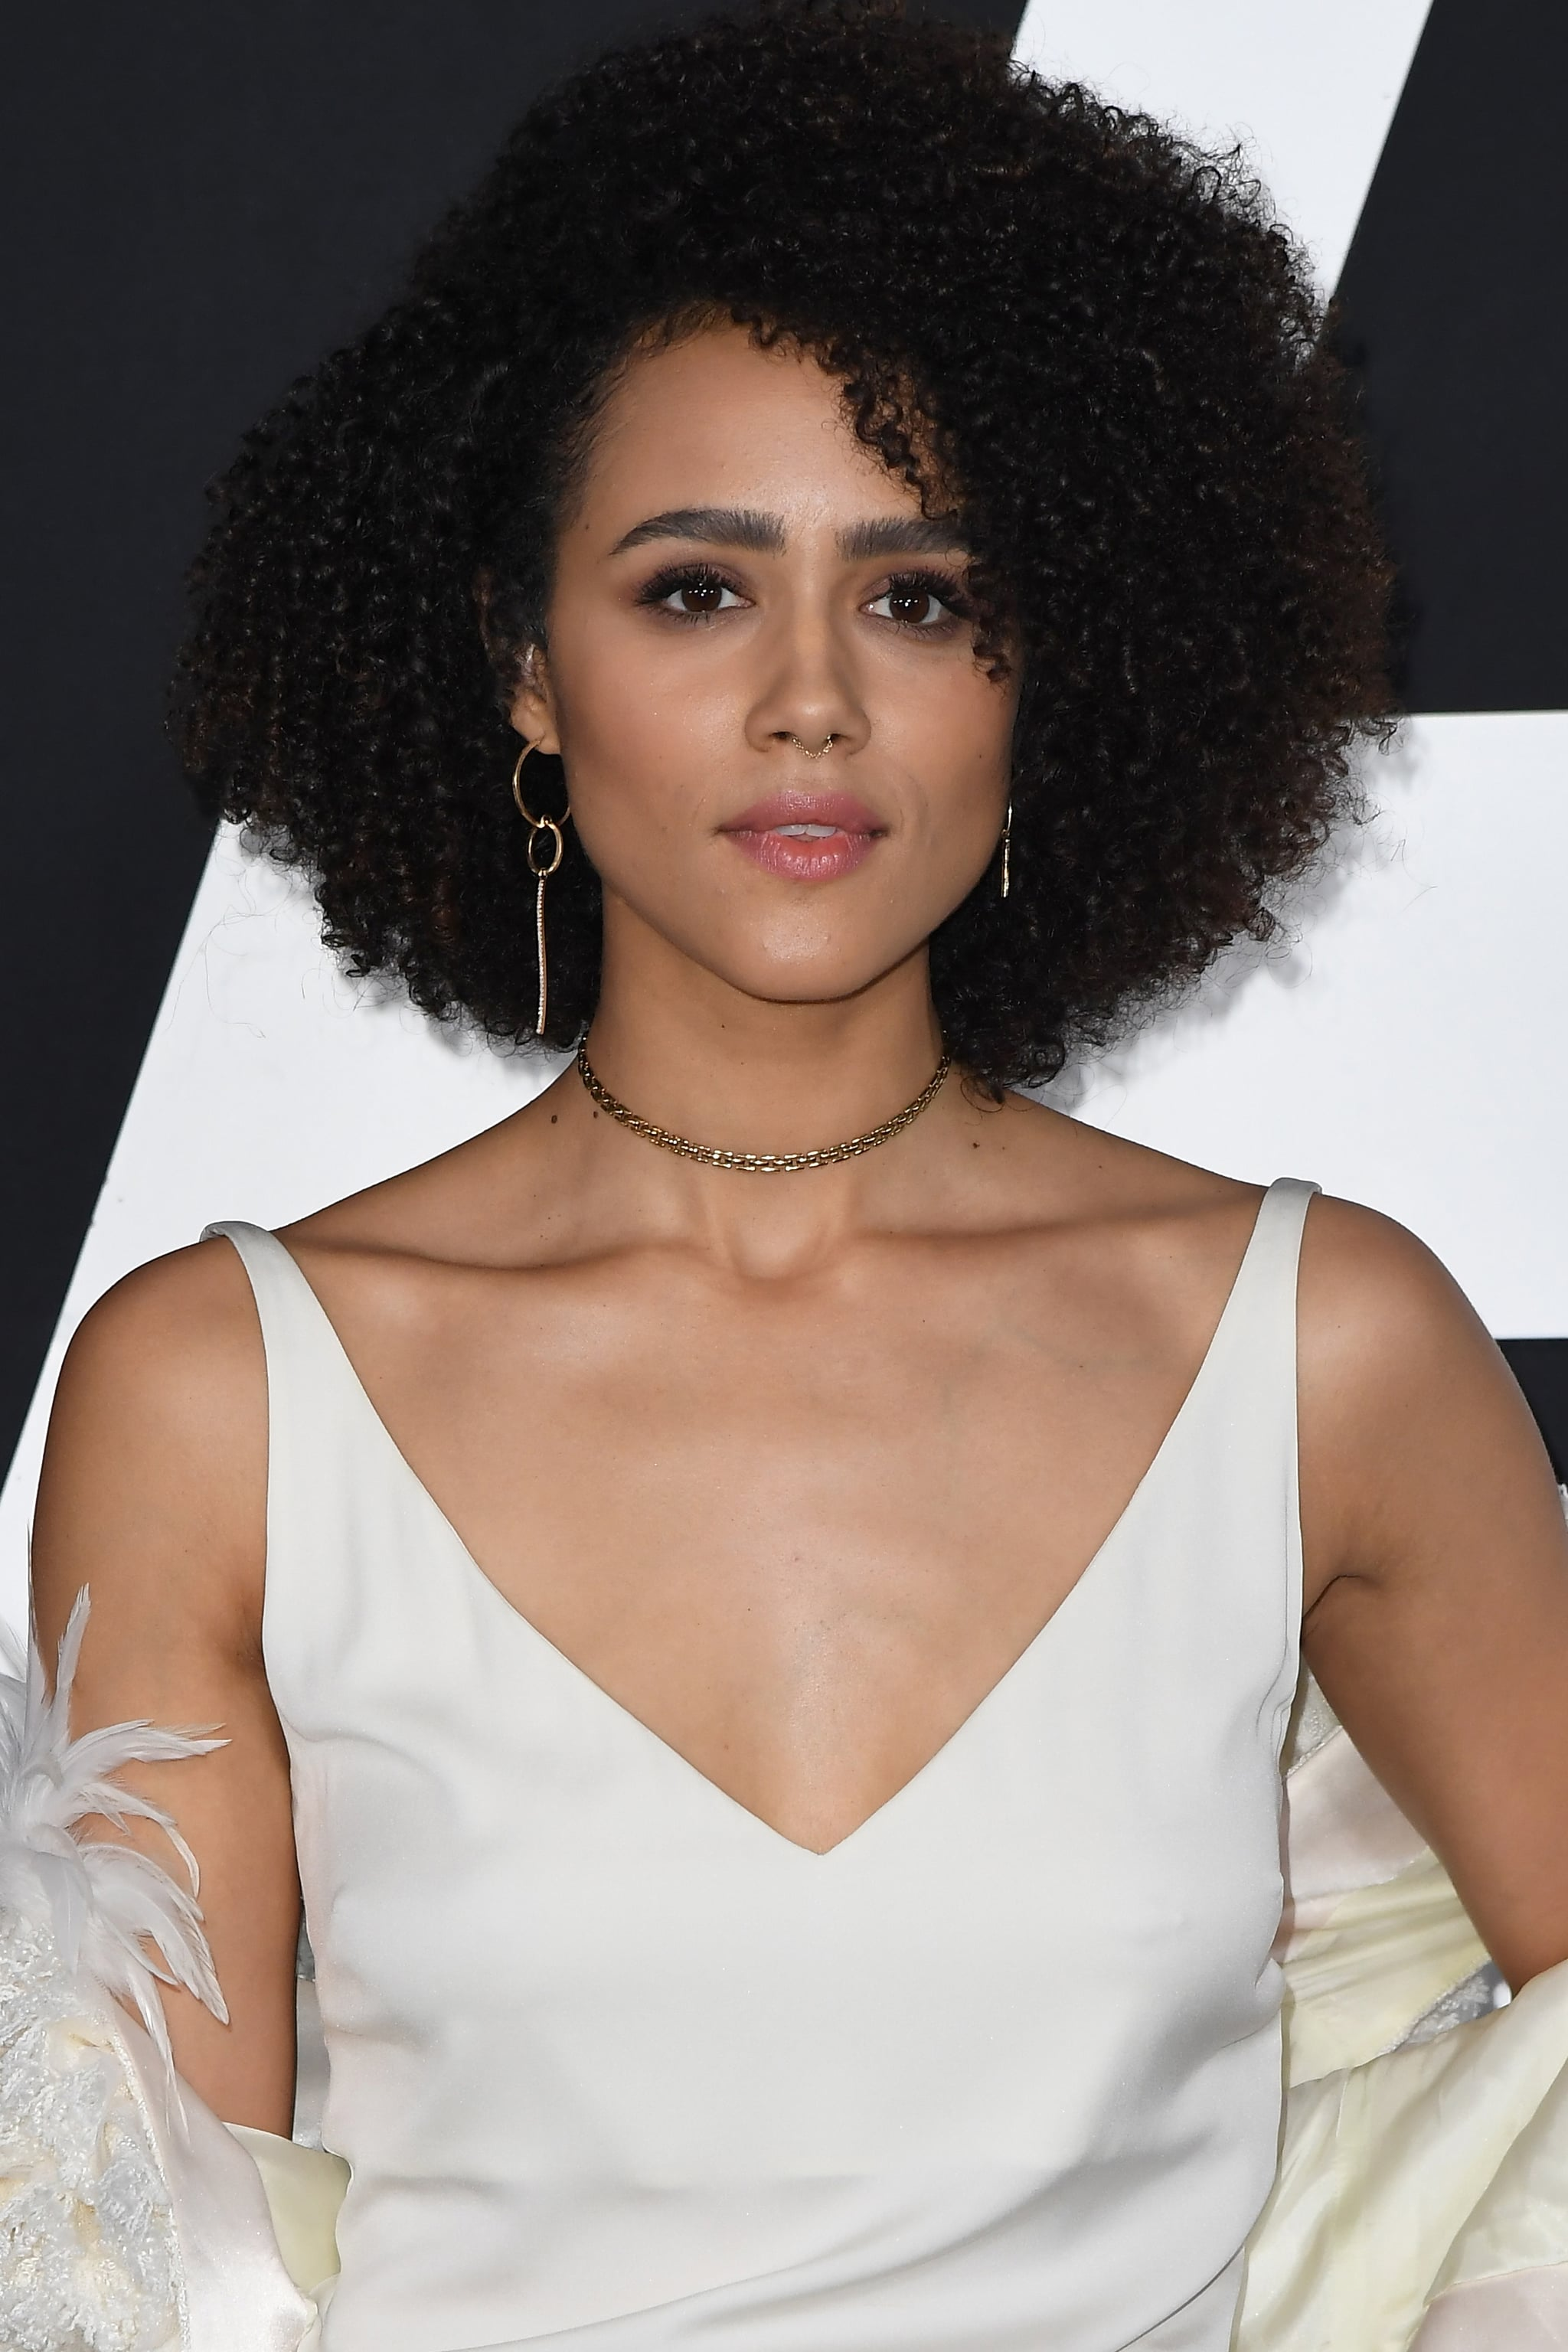 Nathalie Emmanuel As Ramsey The Fate Of The Furious The Full Cast Popsugar Entertainment Photo 7